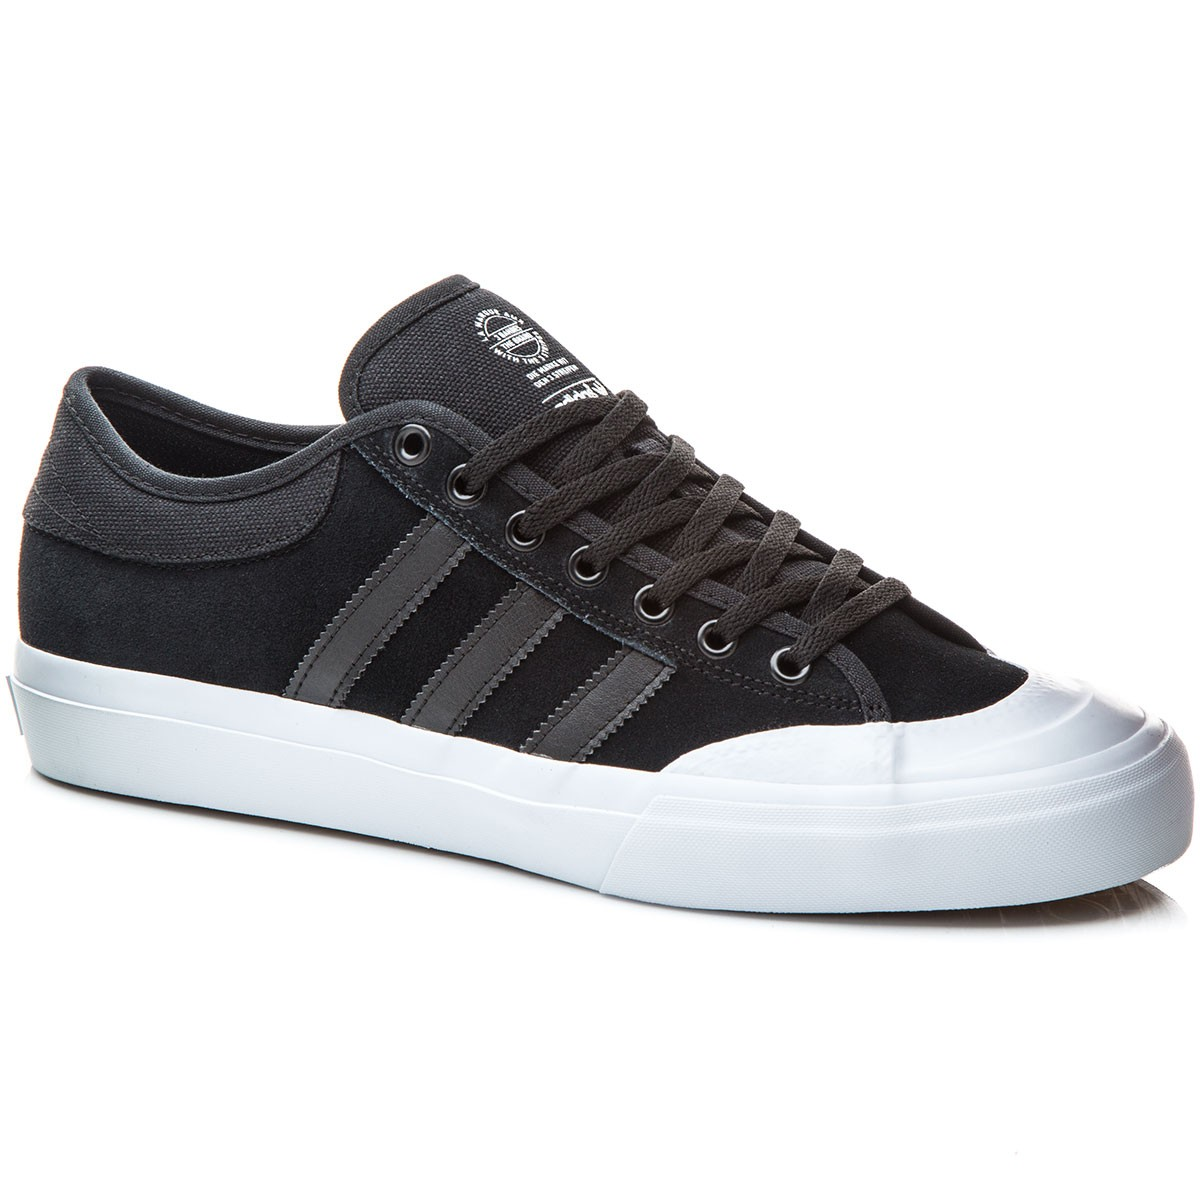 Adidas Matchcourt Shoes - BlackBlackWhite - 6.0